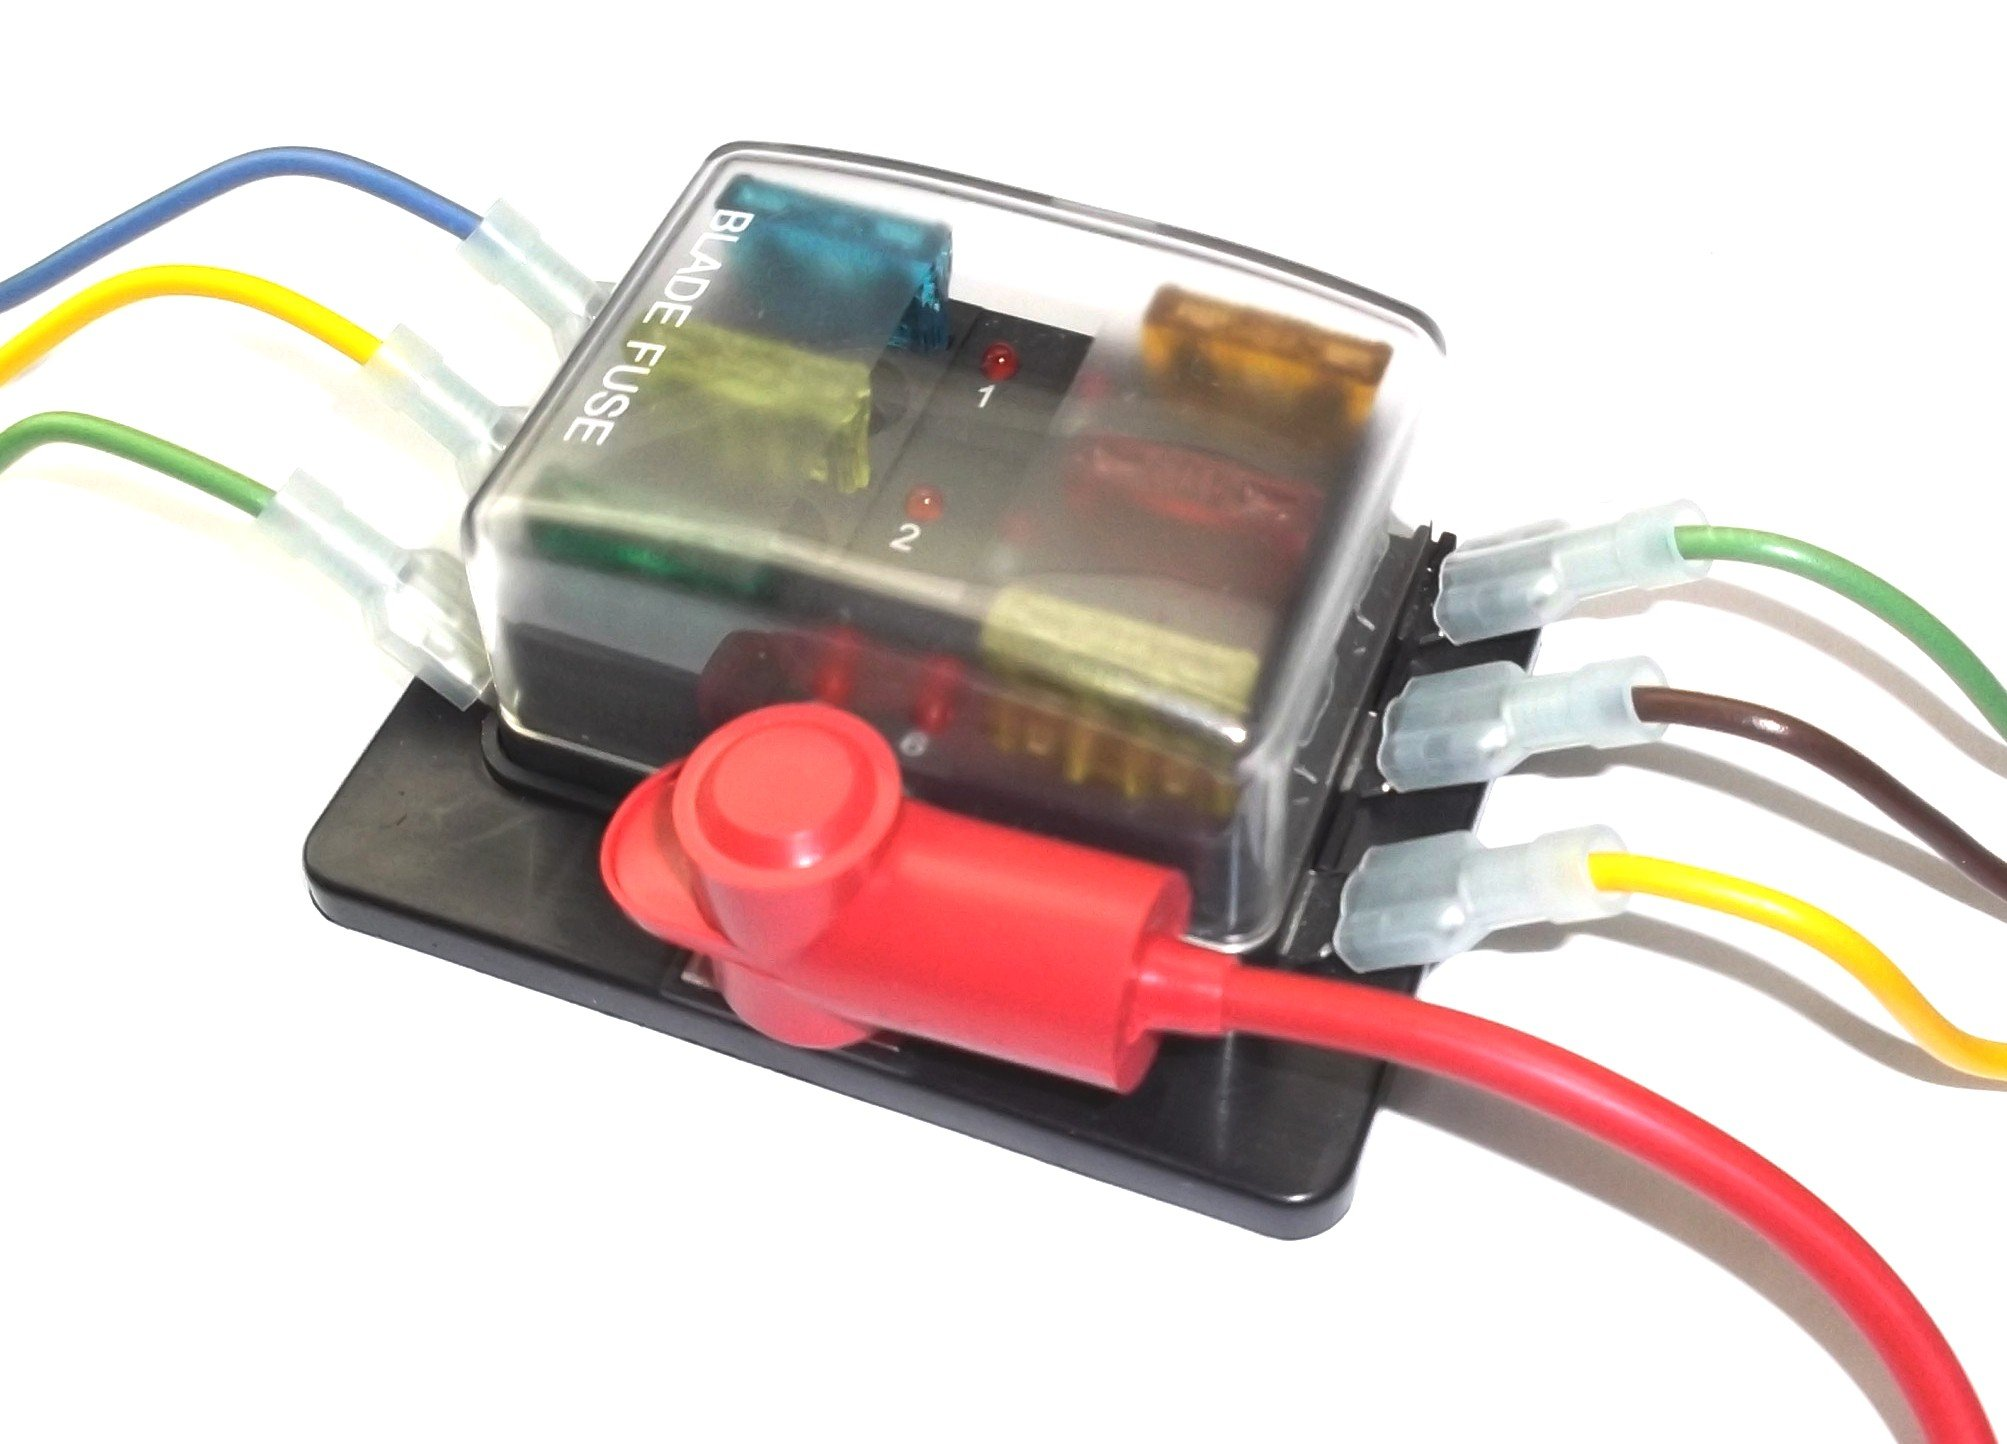 Fastronix 6 Circuit LED Fuse Block and Cover Kit with ATO/ATC Fuses product  image